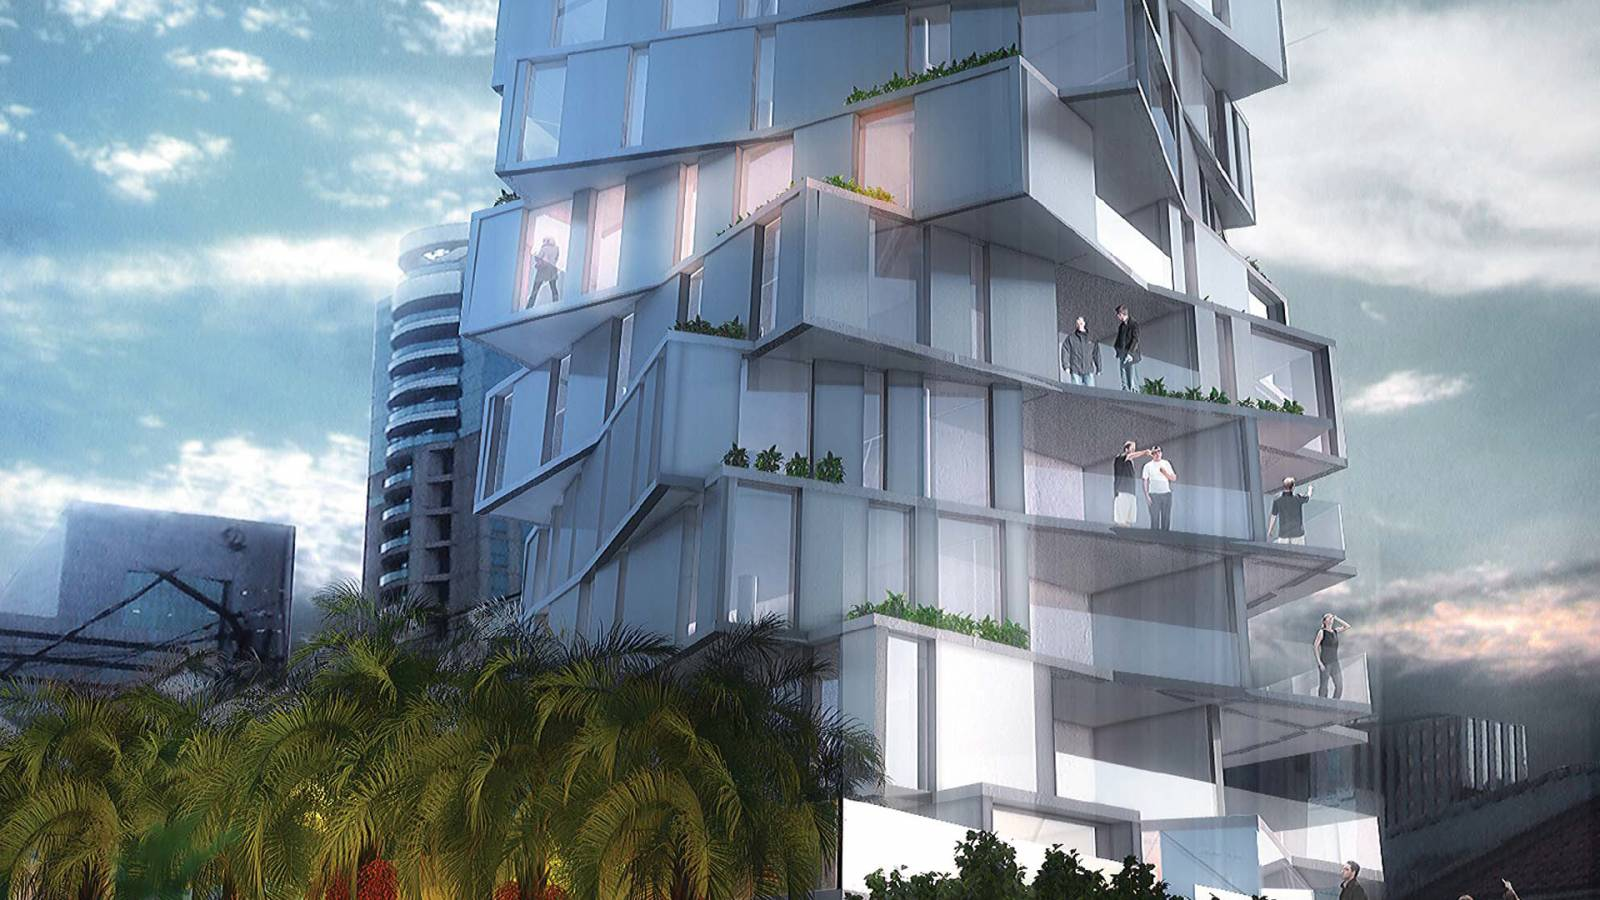 TOWER BASE - Itaim Tower - SPOL Architects